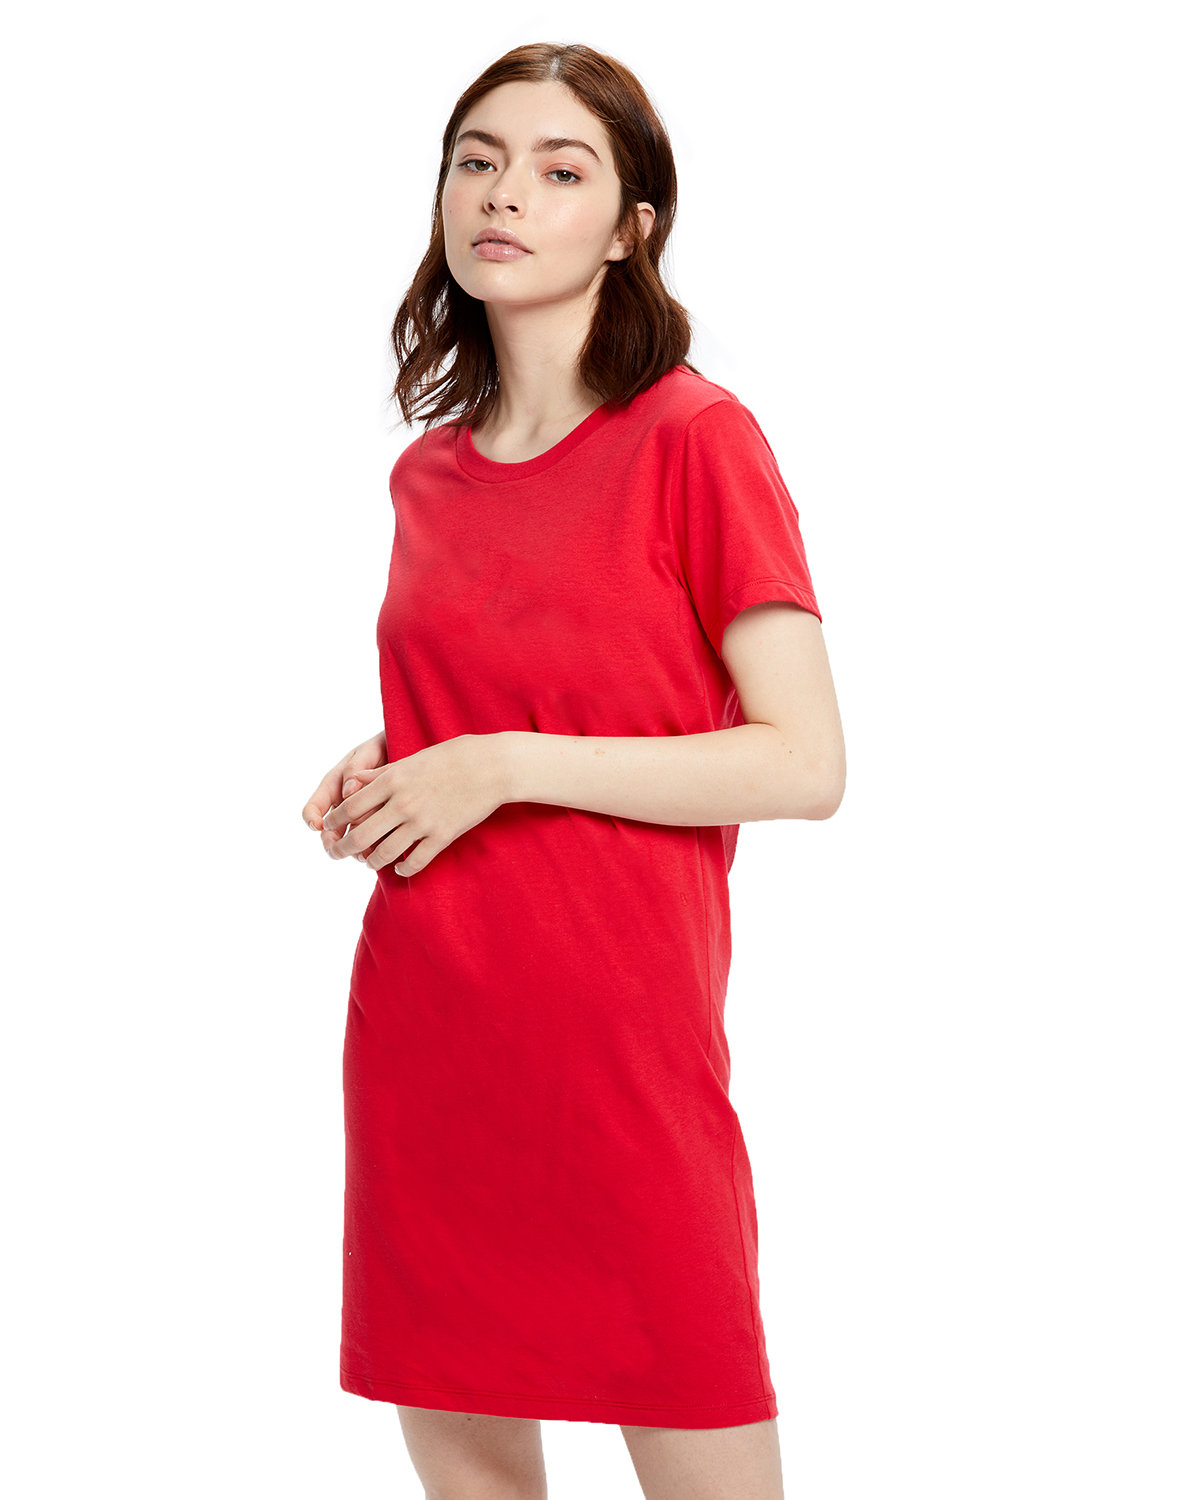 US Blanks Ladies' Cotton T-Shirt Dress RED